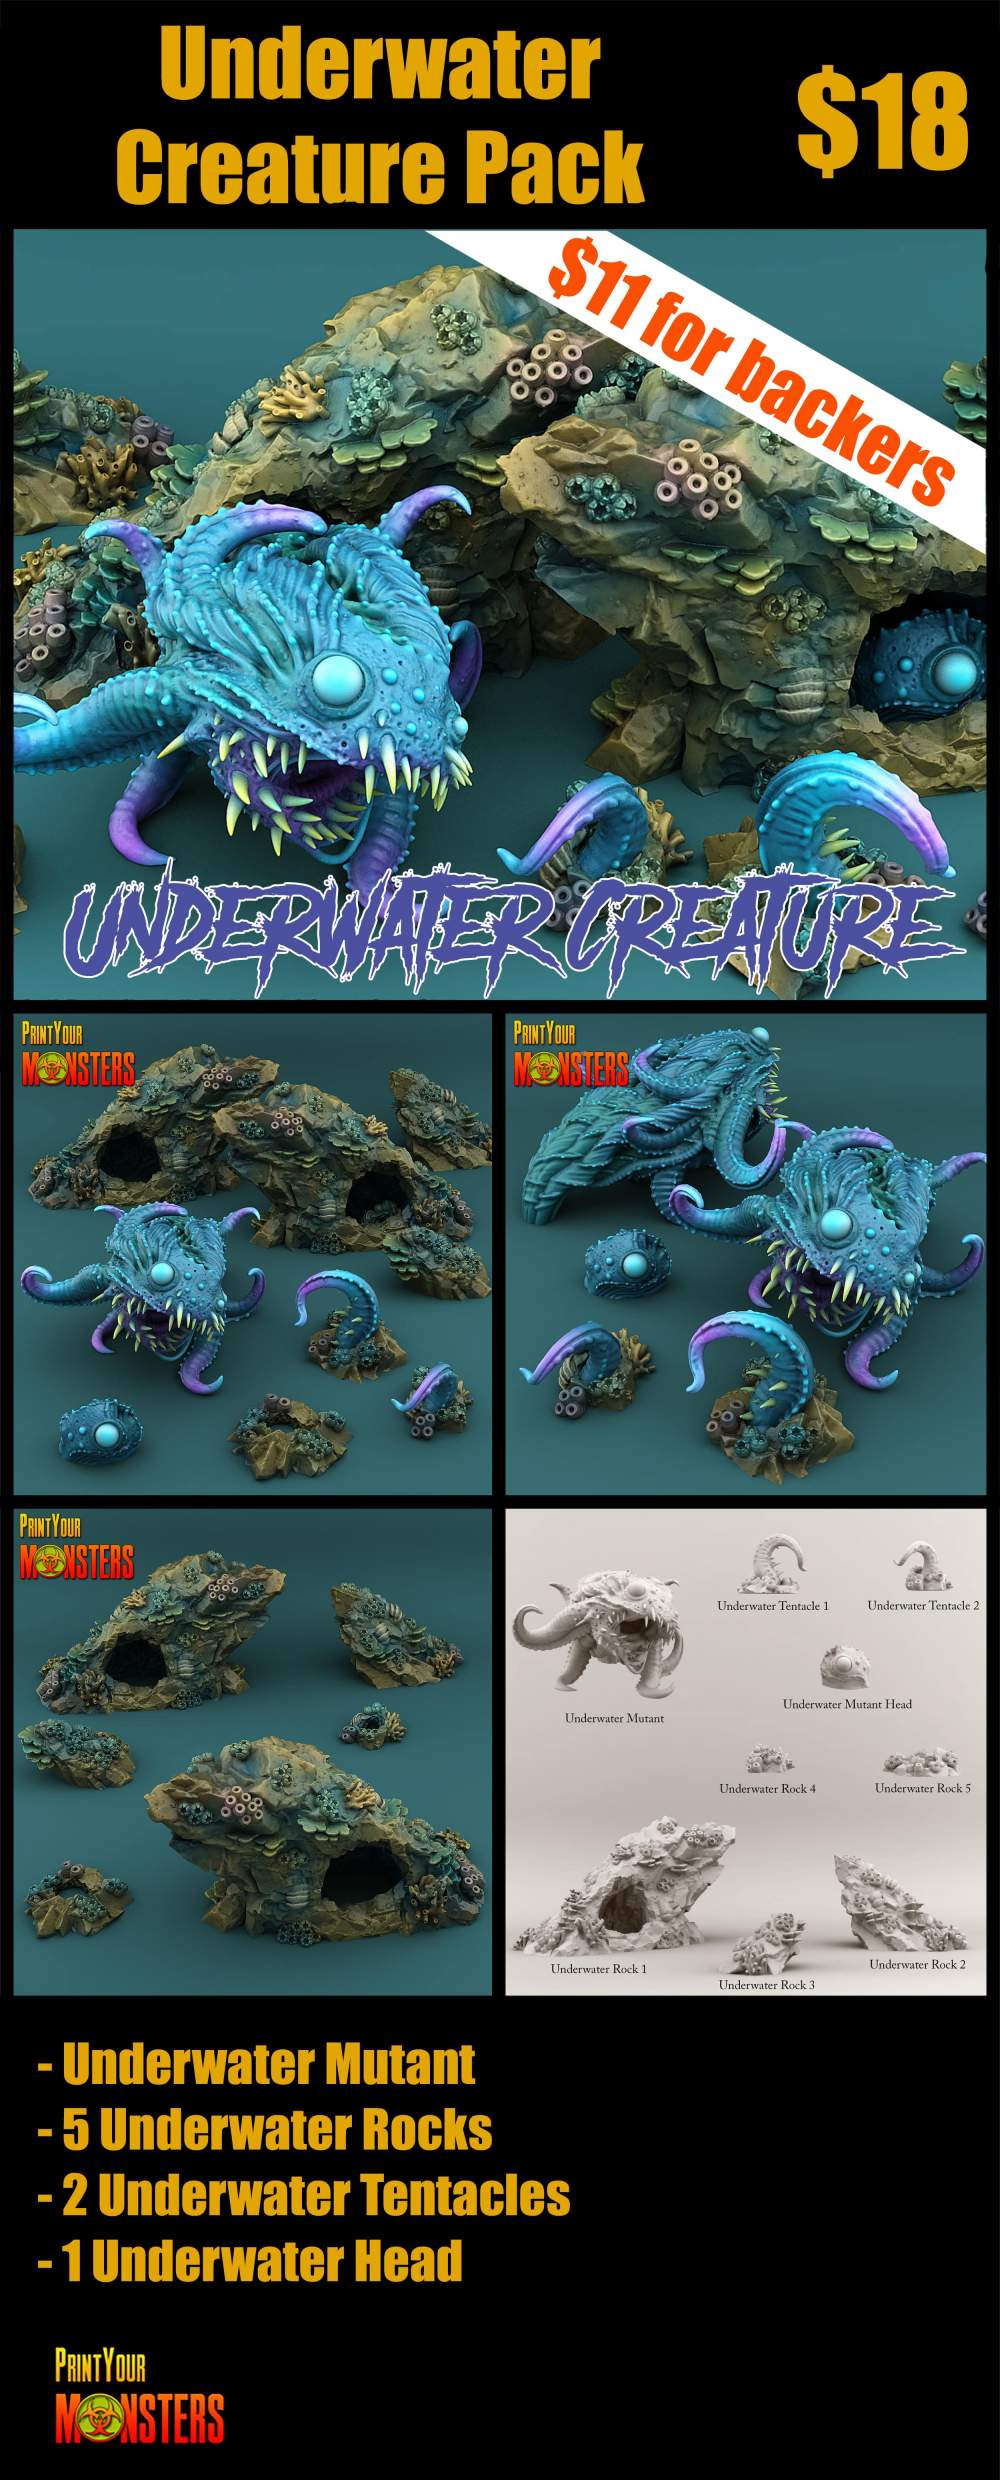 Underwater Creature Pack